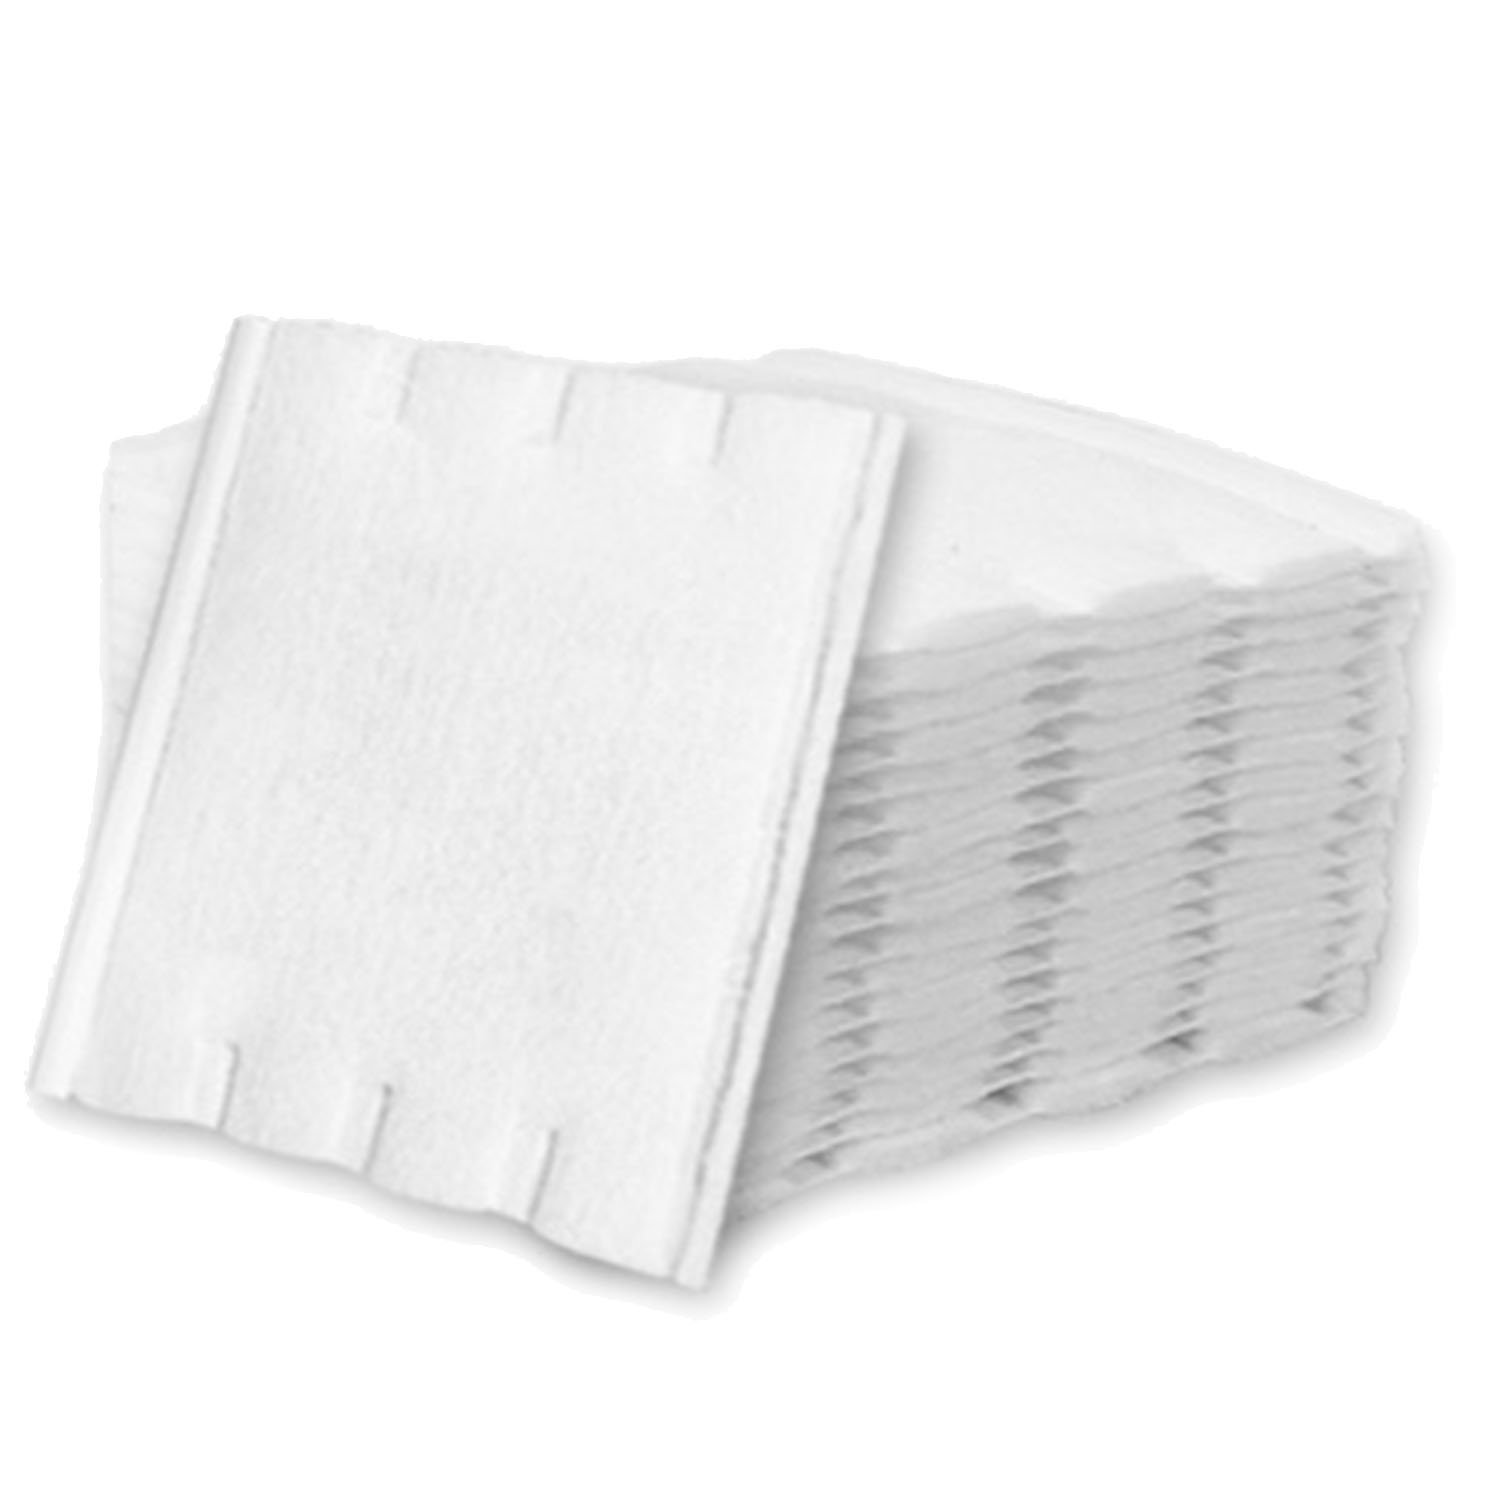 200 Pcs 3-Layer Cosmetic Makeup White Cotton Facial Cleansing Pads Cotton Puff Vococal